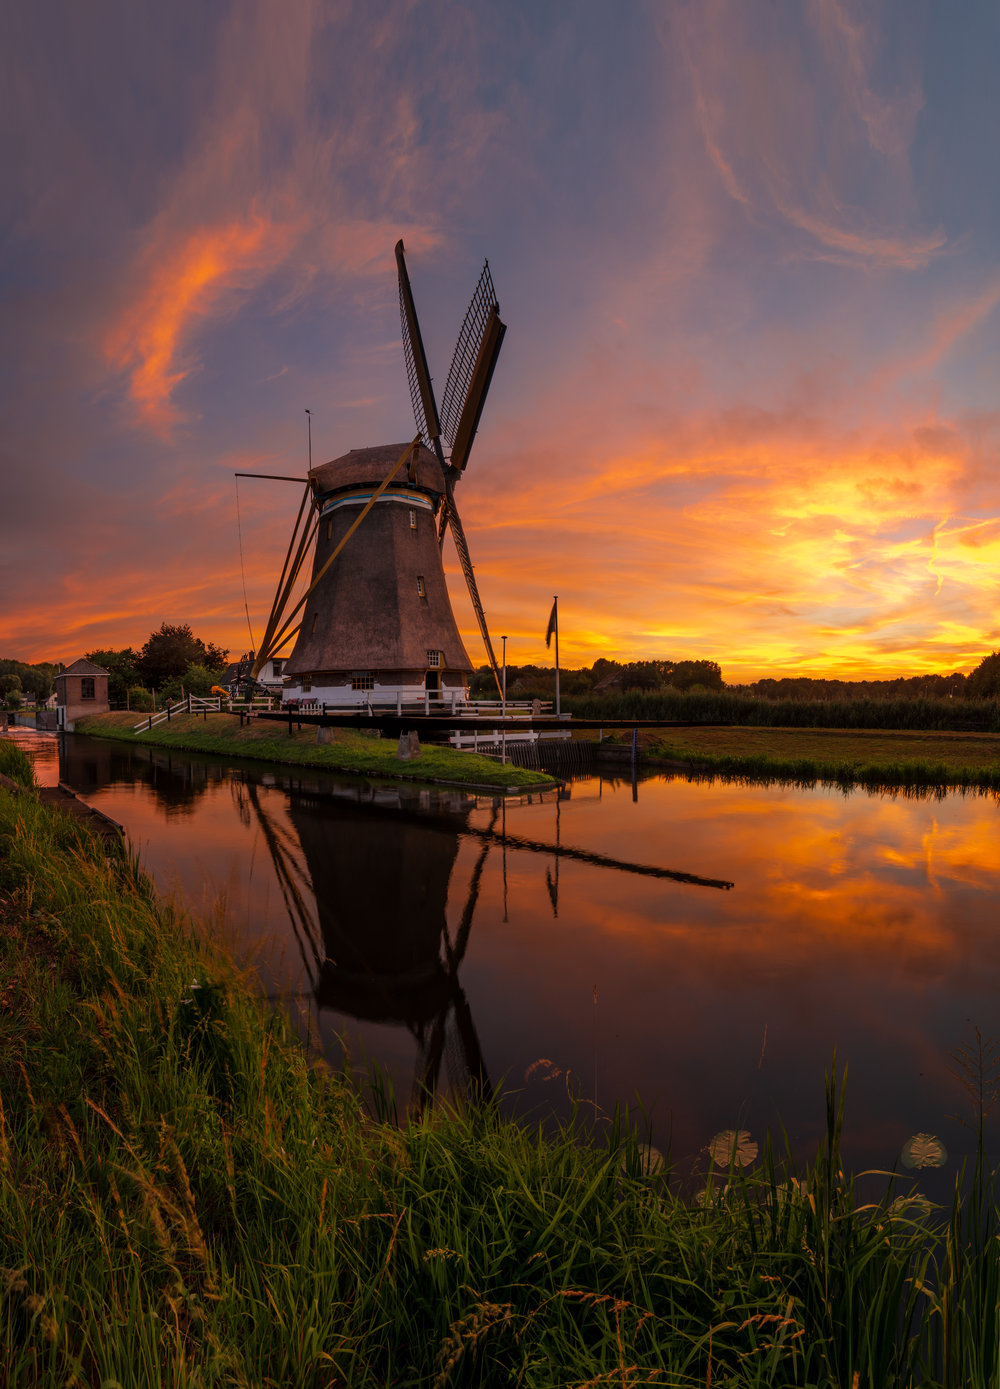 De Vecht, The Netherlands